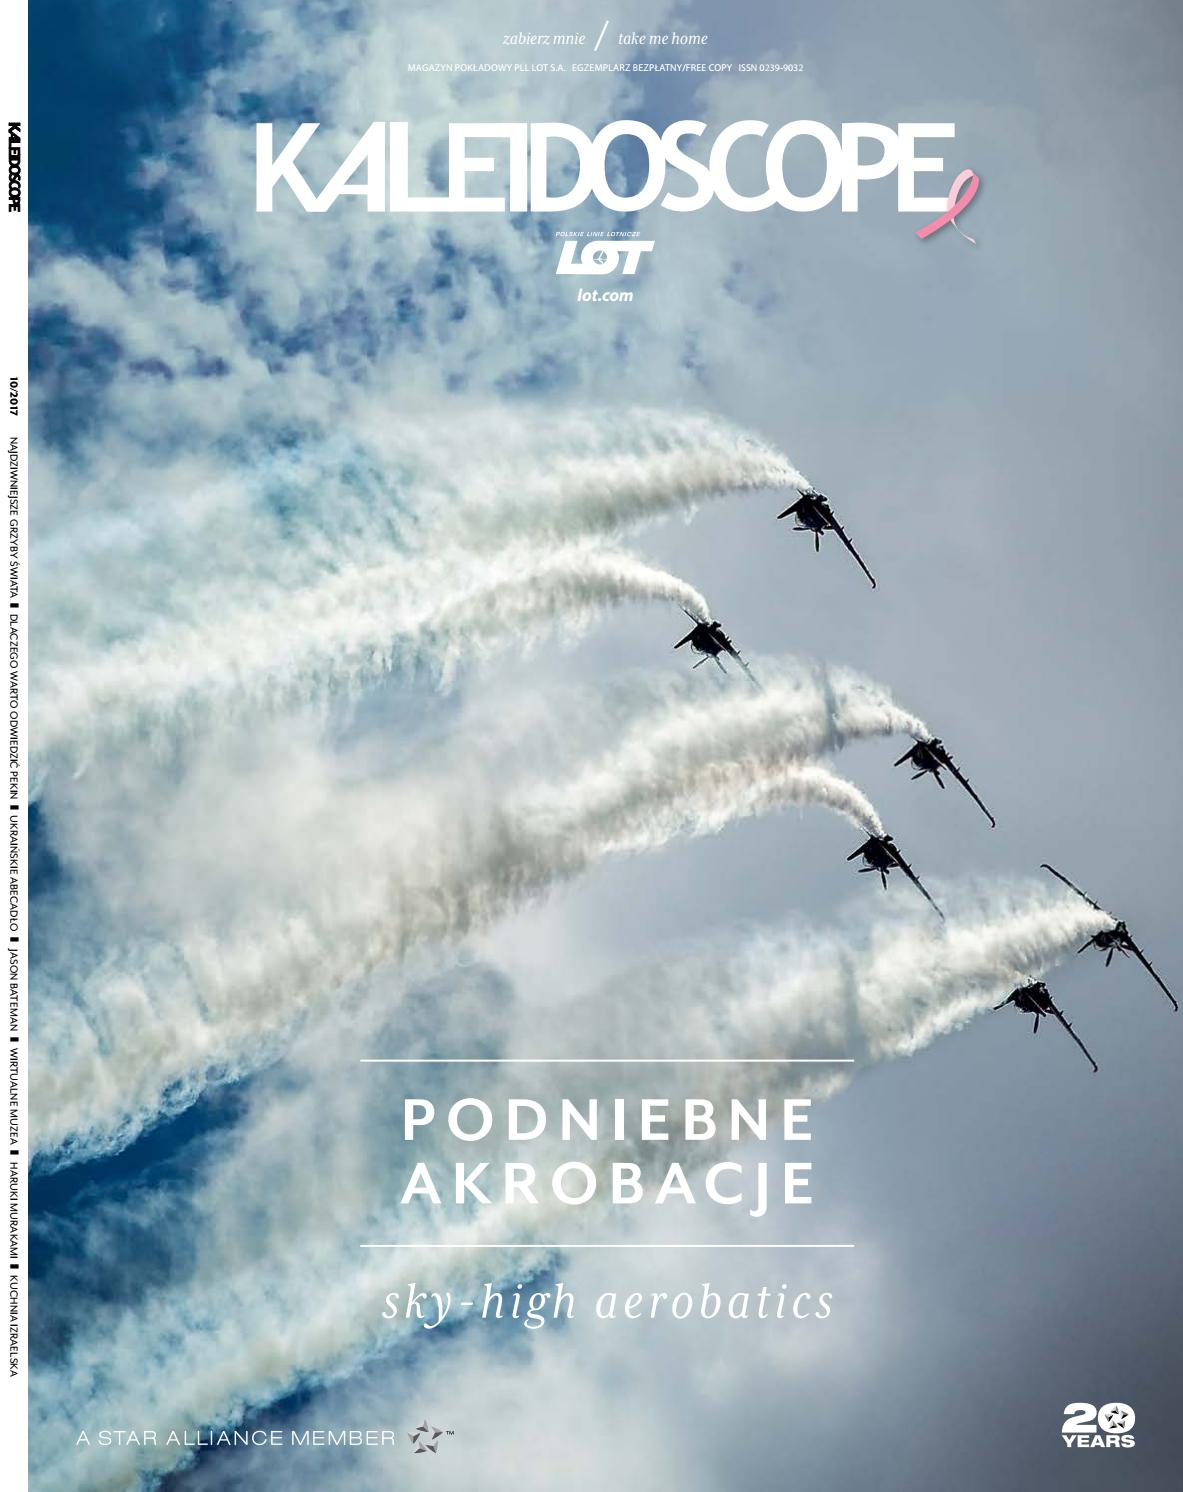 69e08b330db4e Kaleidoscope October 2017 by LOT Polish Airlines - issuu